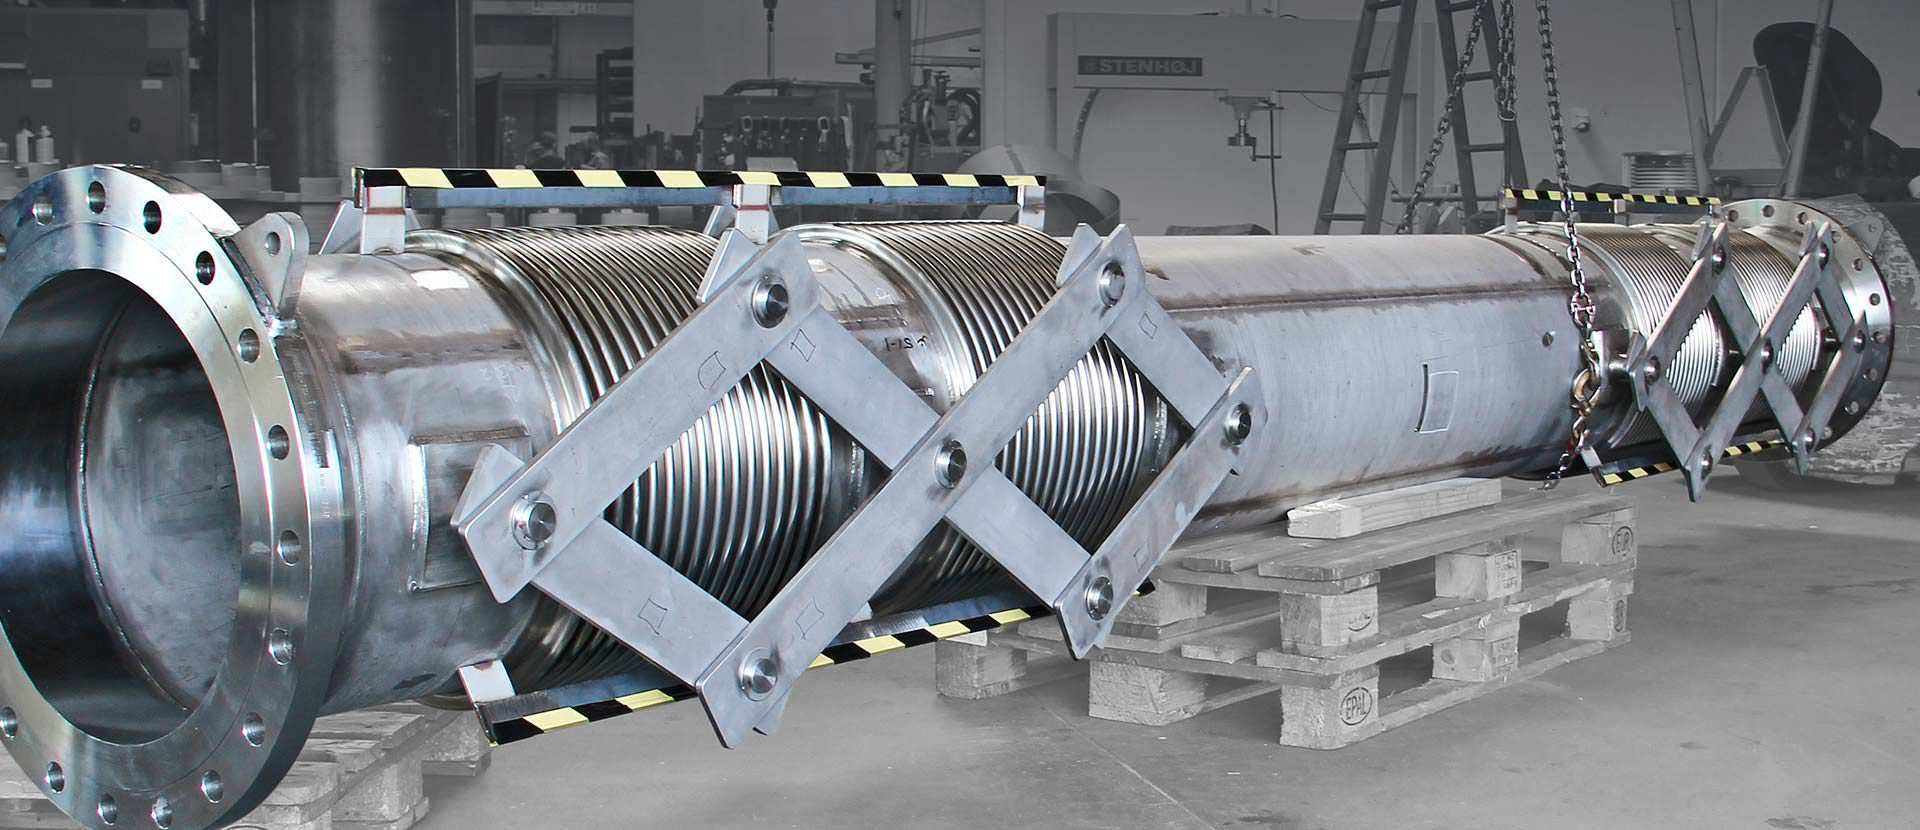 Pantographic gimbal expansion joint